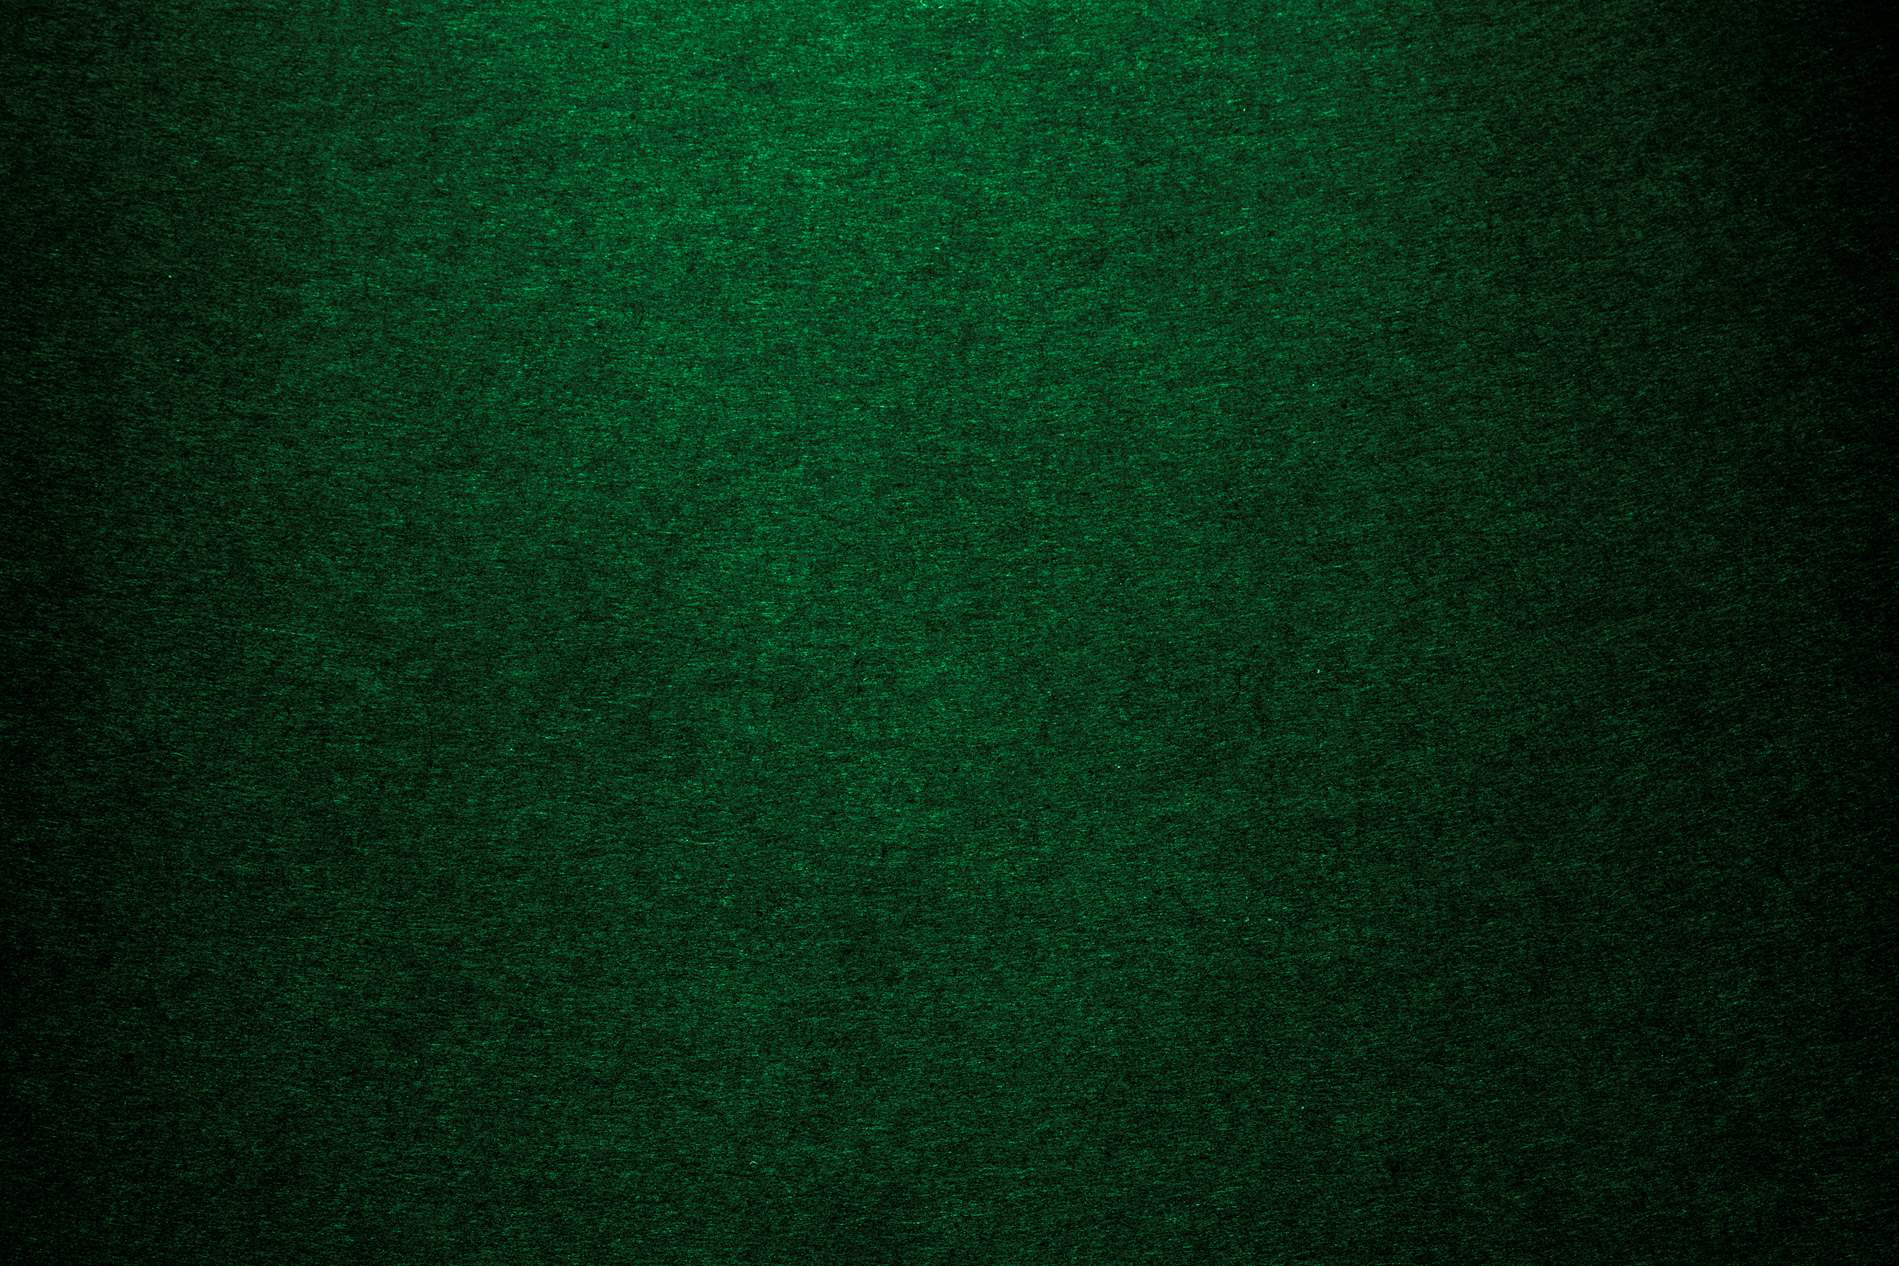 Gray Green Paint Color Clean Dark Green Texture Background Photohdx